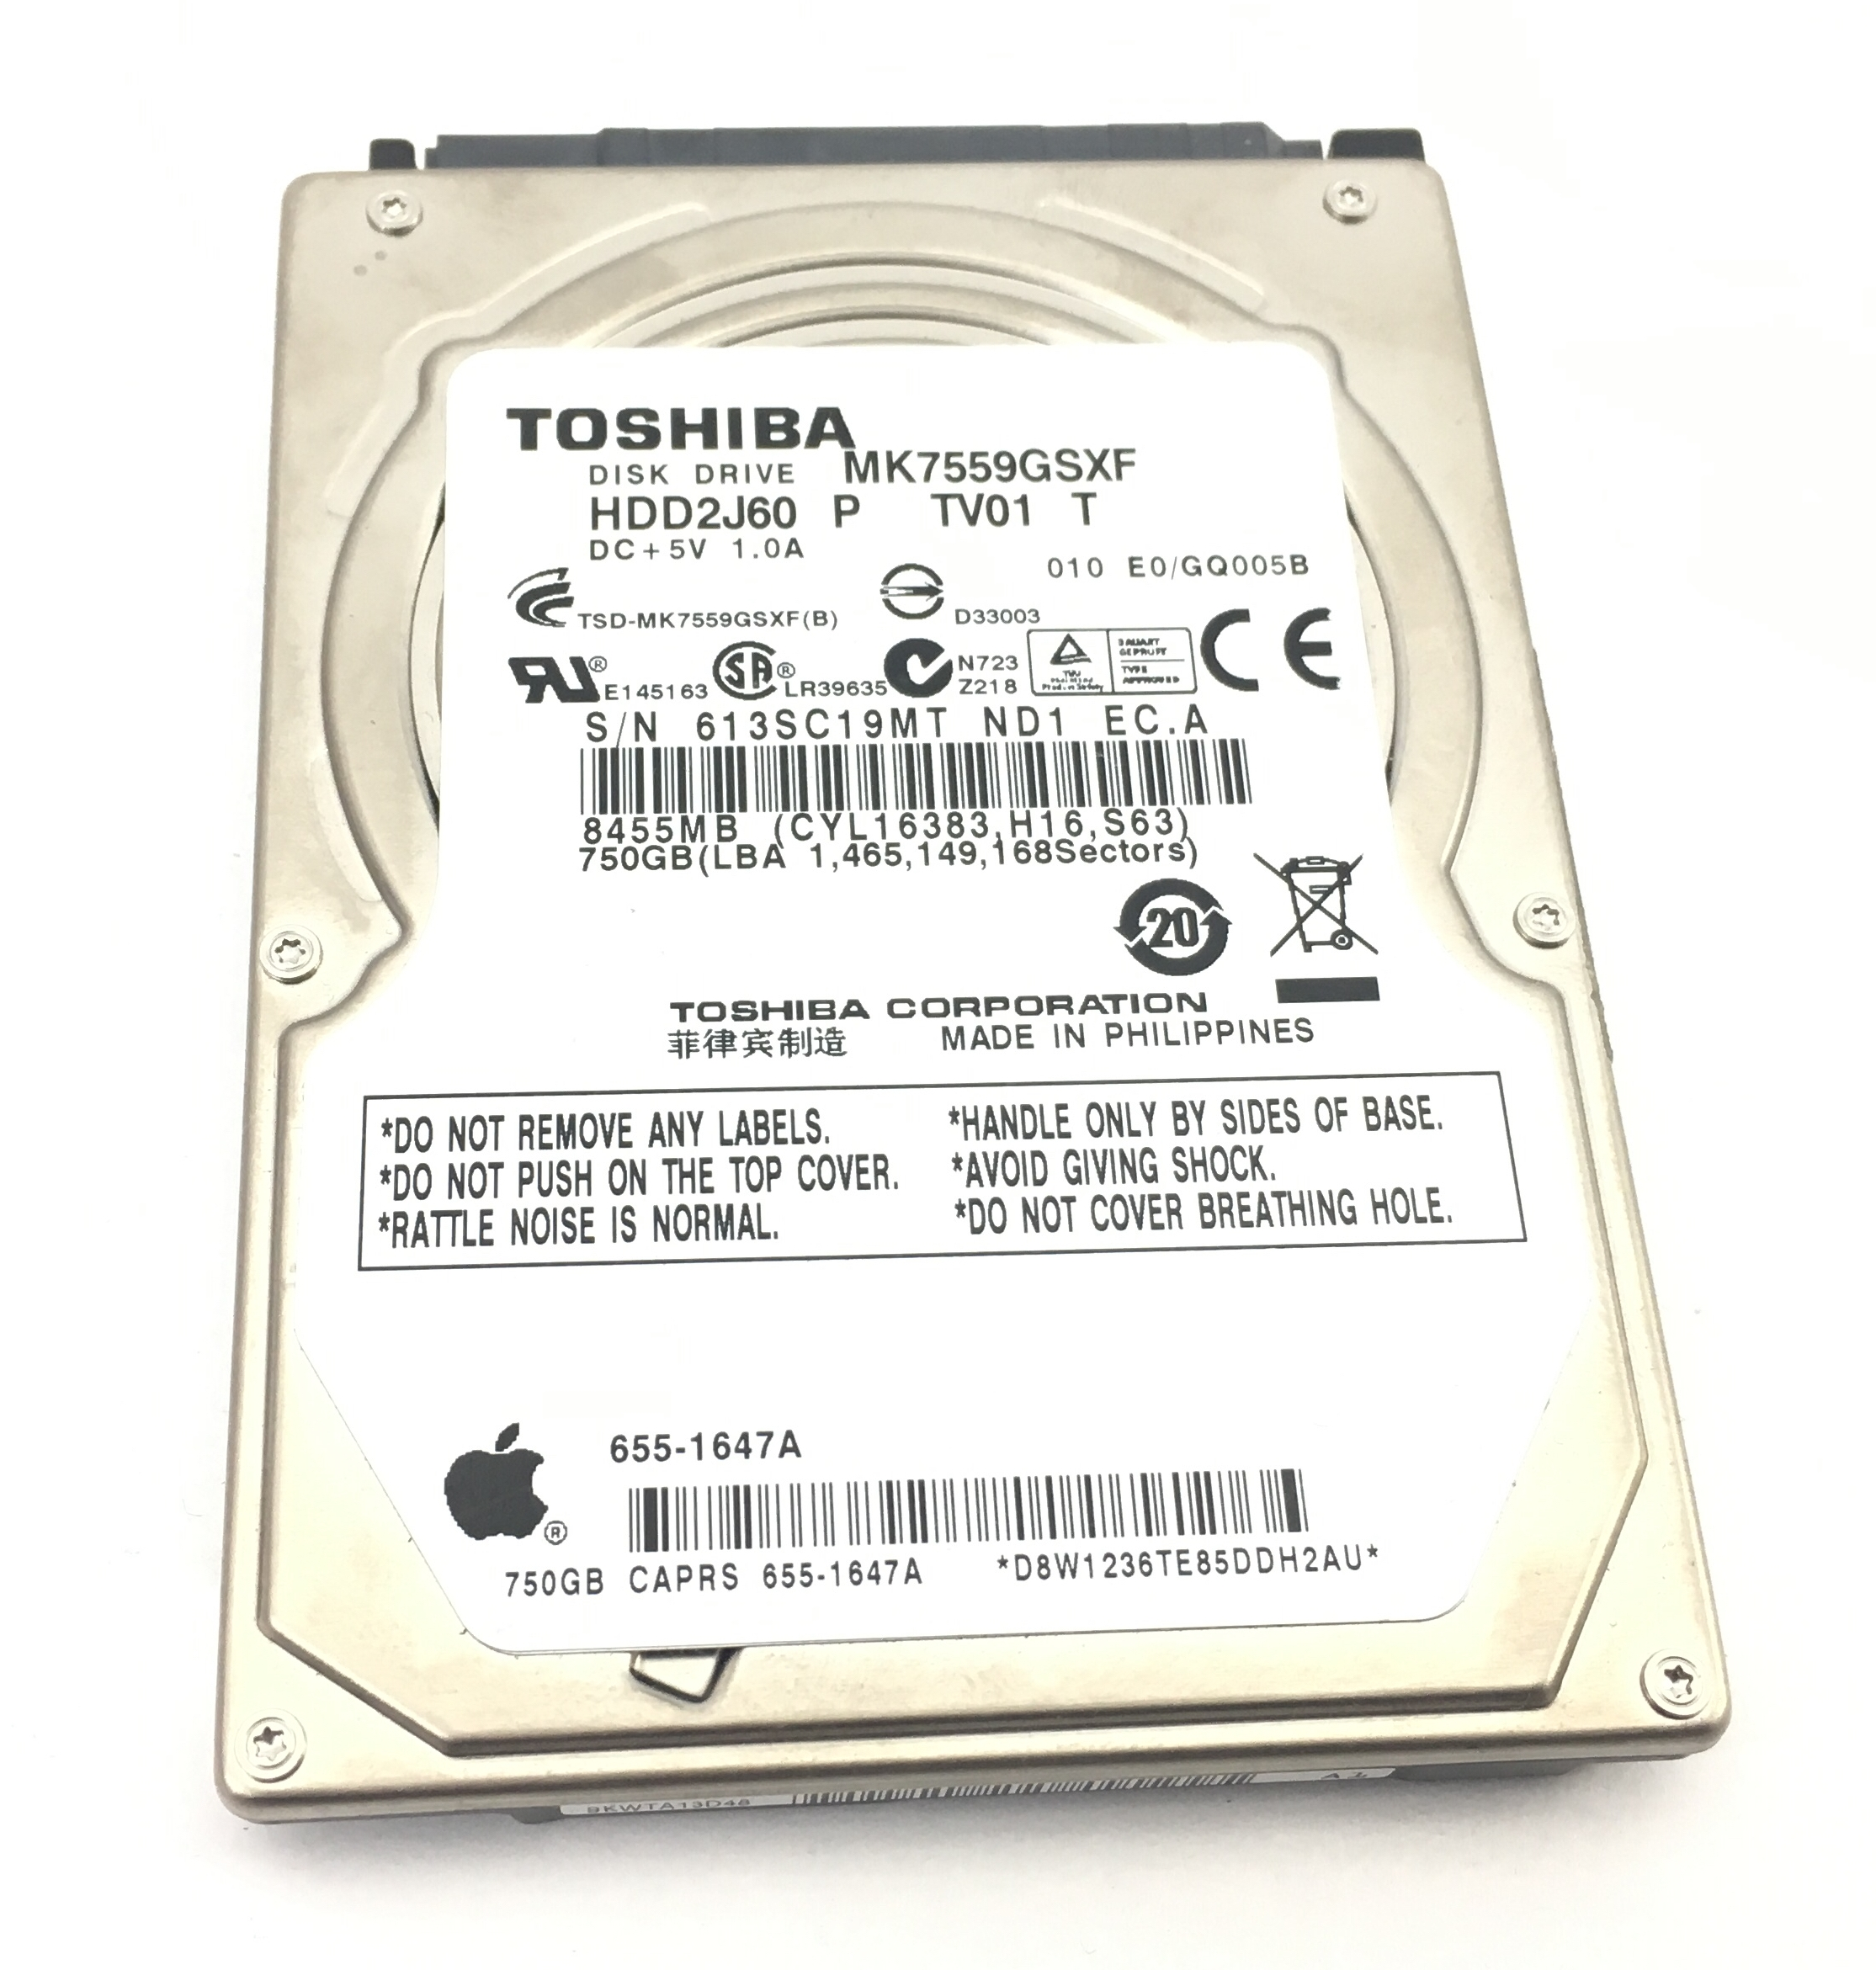 Apple Toshiba 750GB SATA 2.5'' Hard Drive (655-1647A)